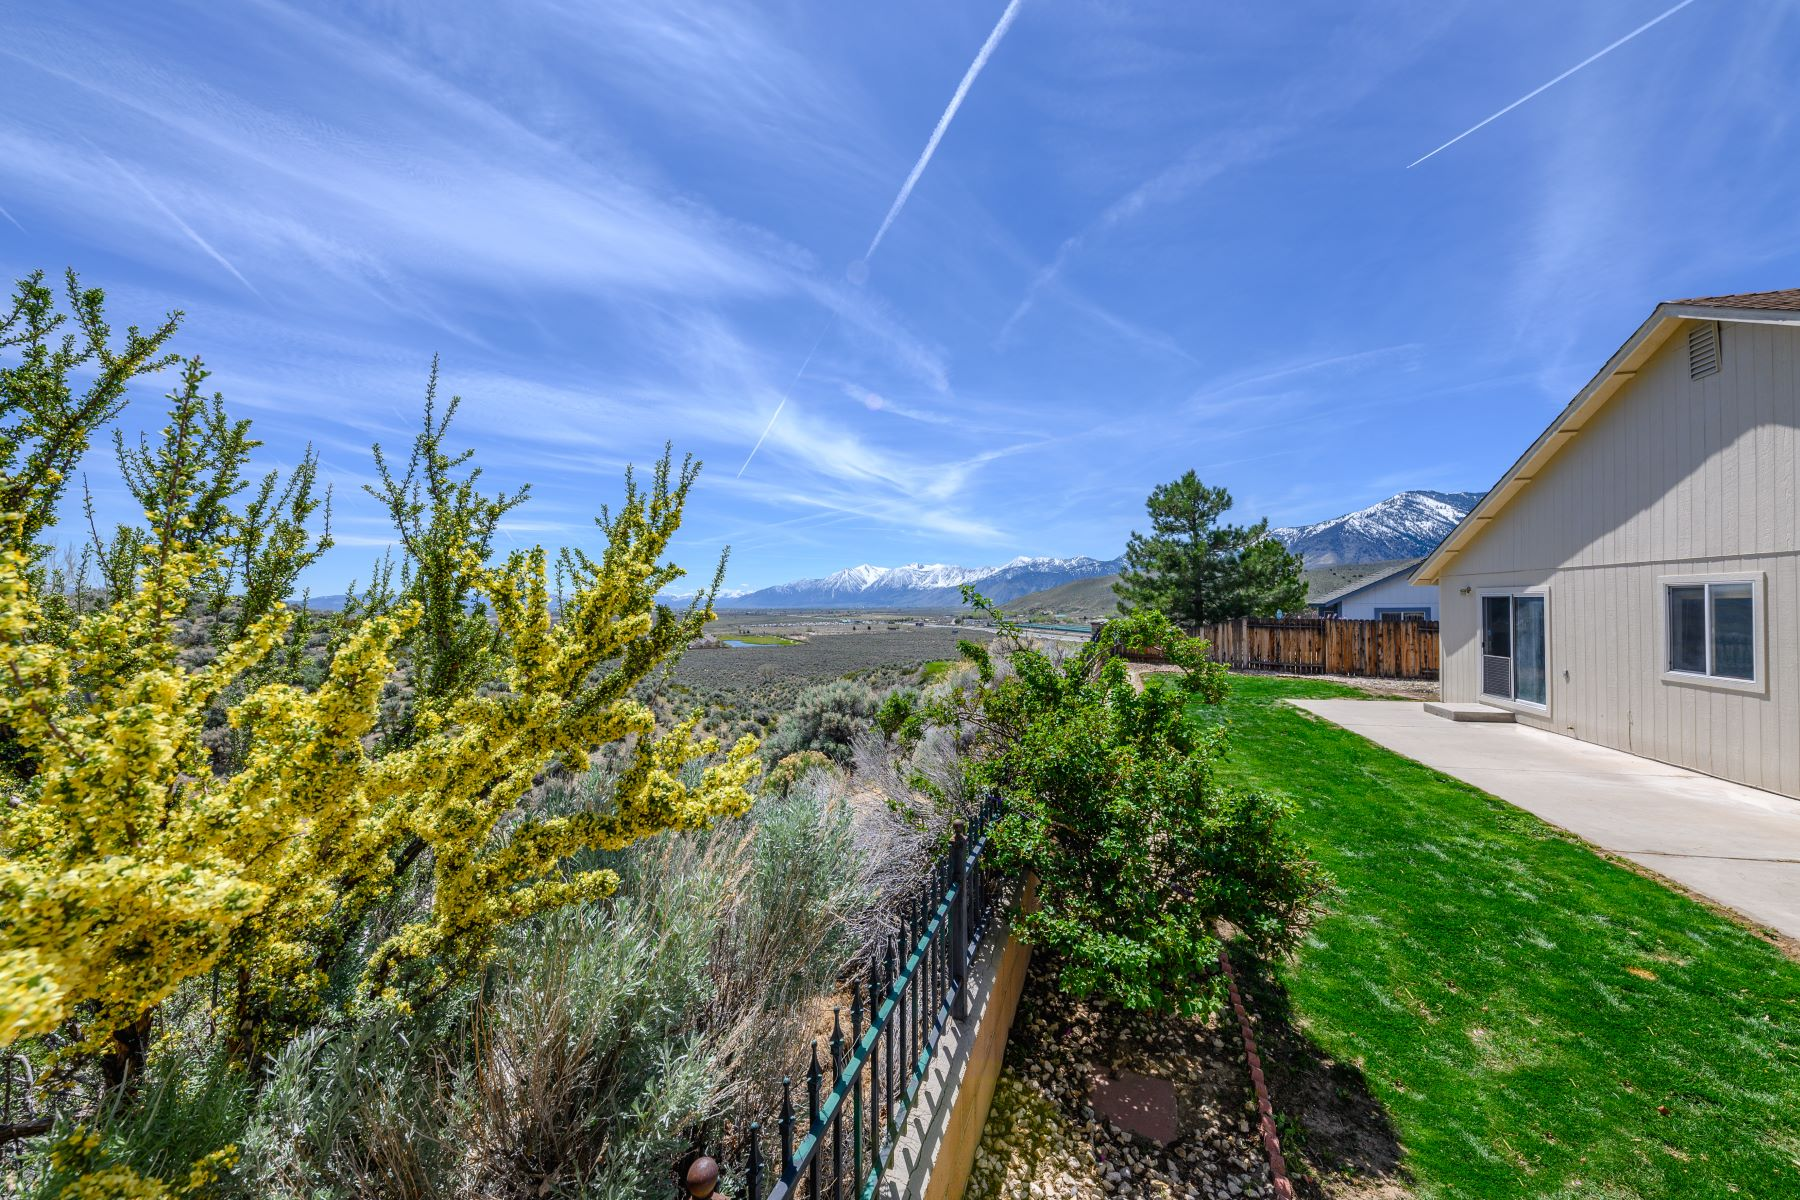 Additional photo for property listing at 957 Ranchview Circle, Carson City, NV 89705 957 Ranchview Circle Carson City, Nevada 89705 United States